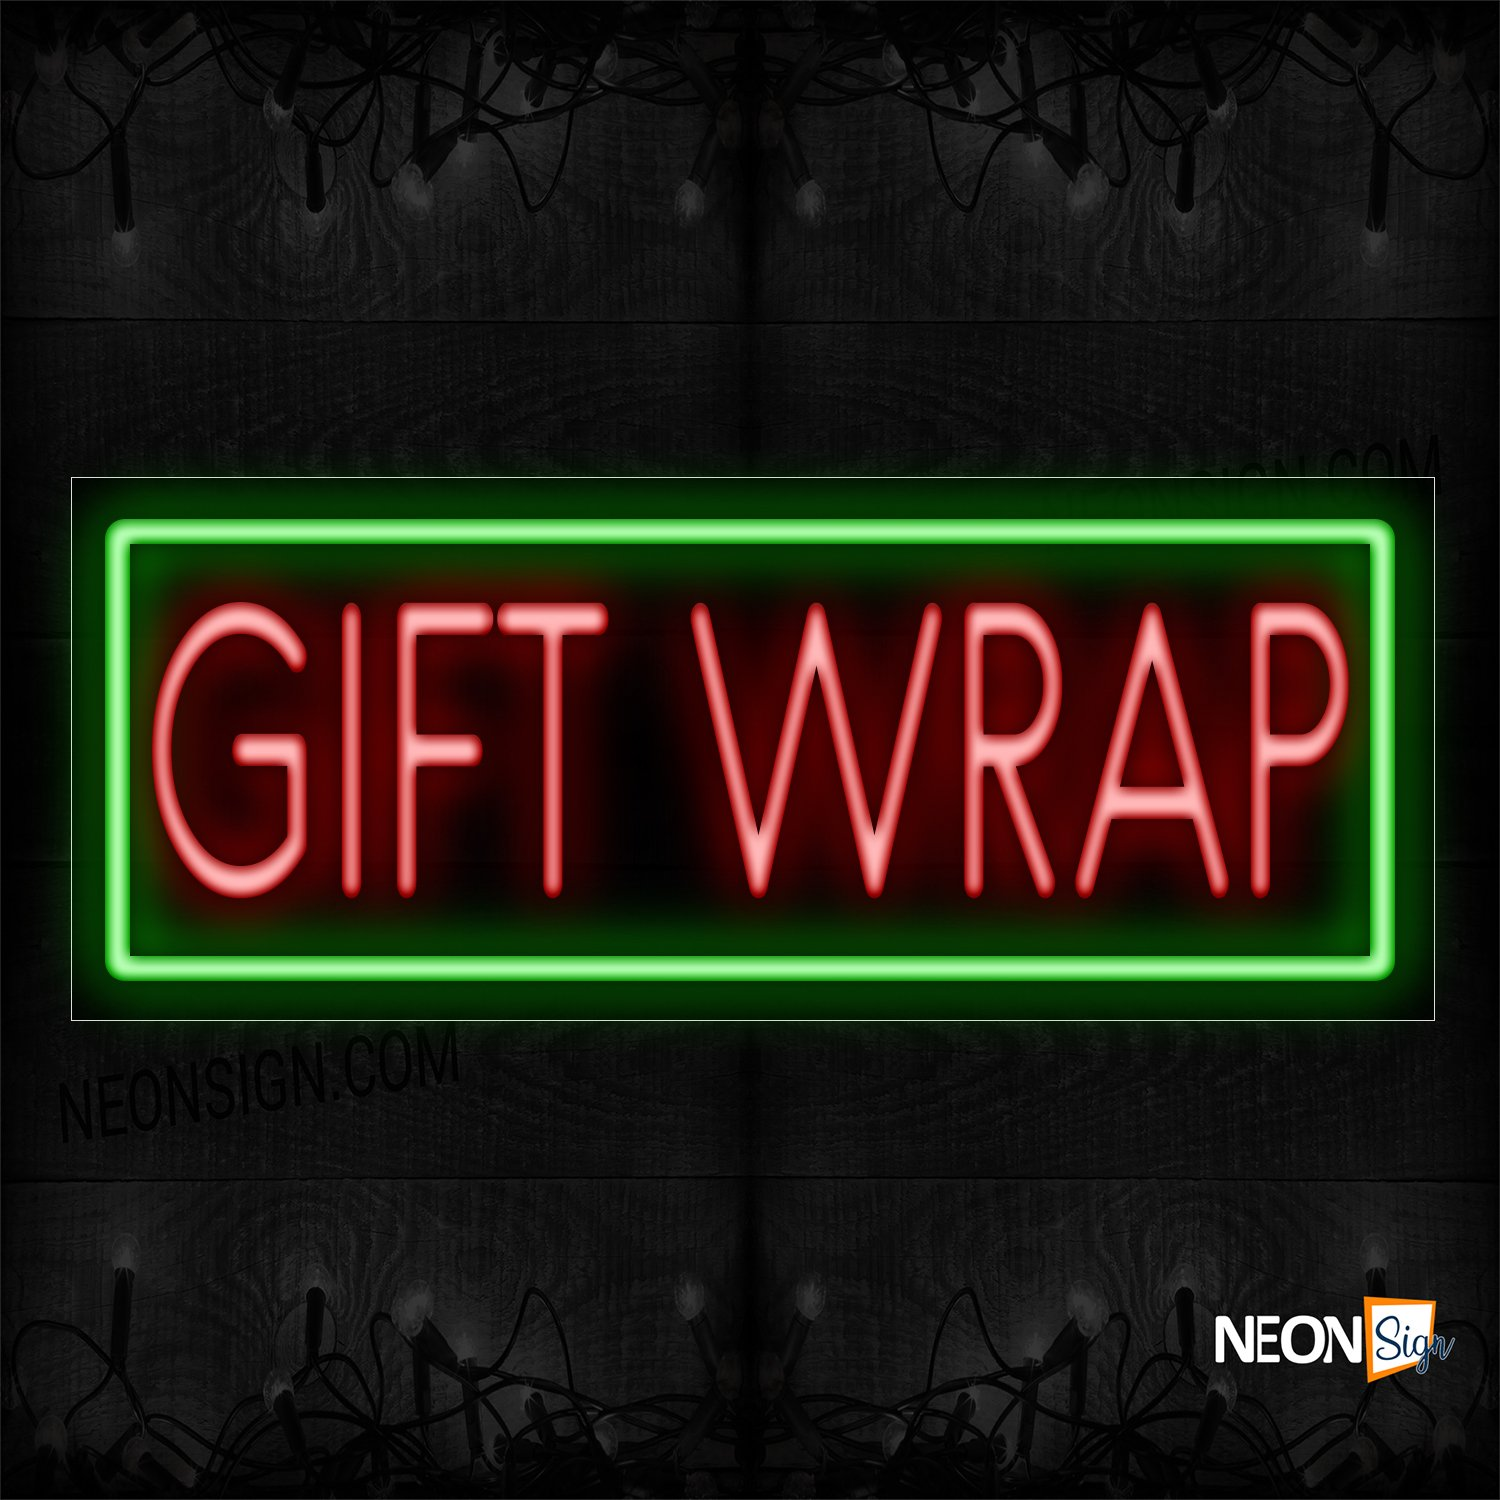 Image of 11414 Gift Wrap With Border Neon Sign_13x32 Black Backing